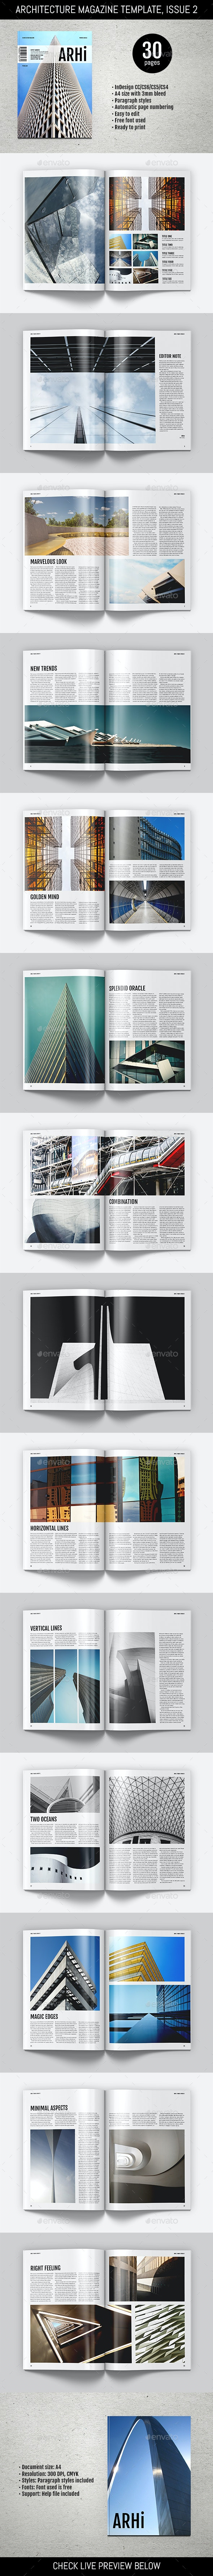 Architecture Magazine Template - Magazines Print Templates